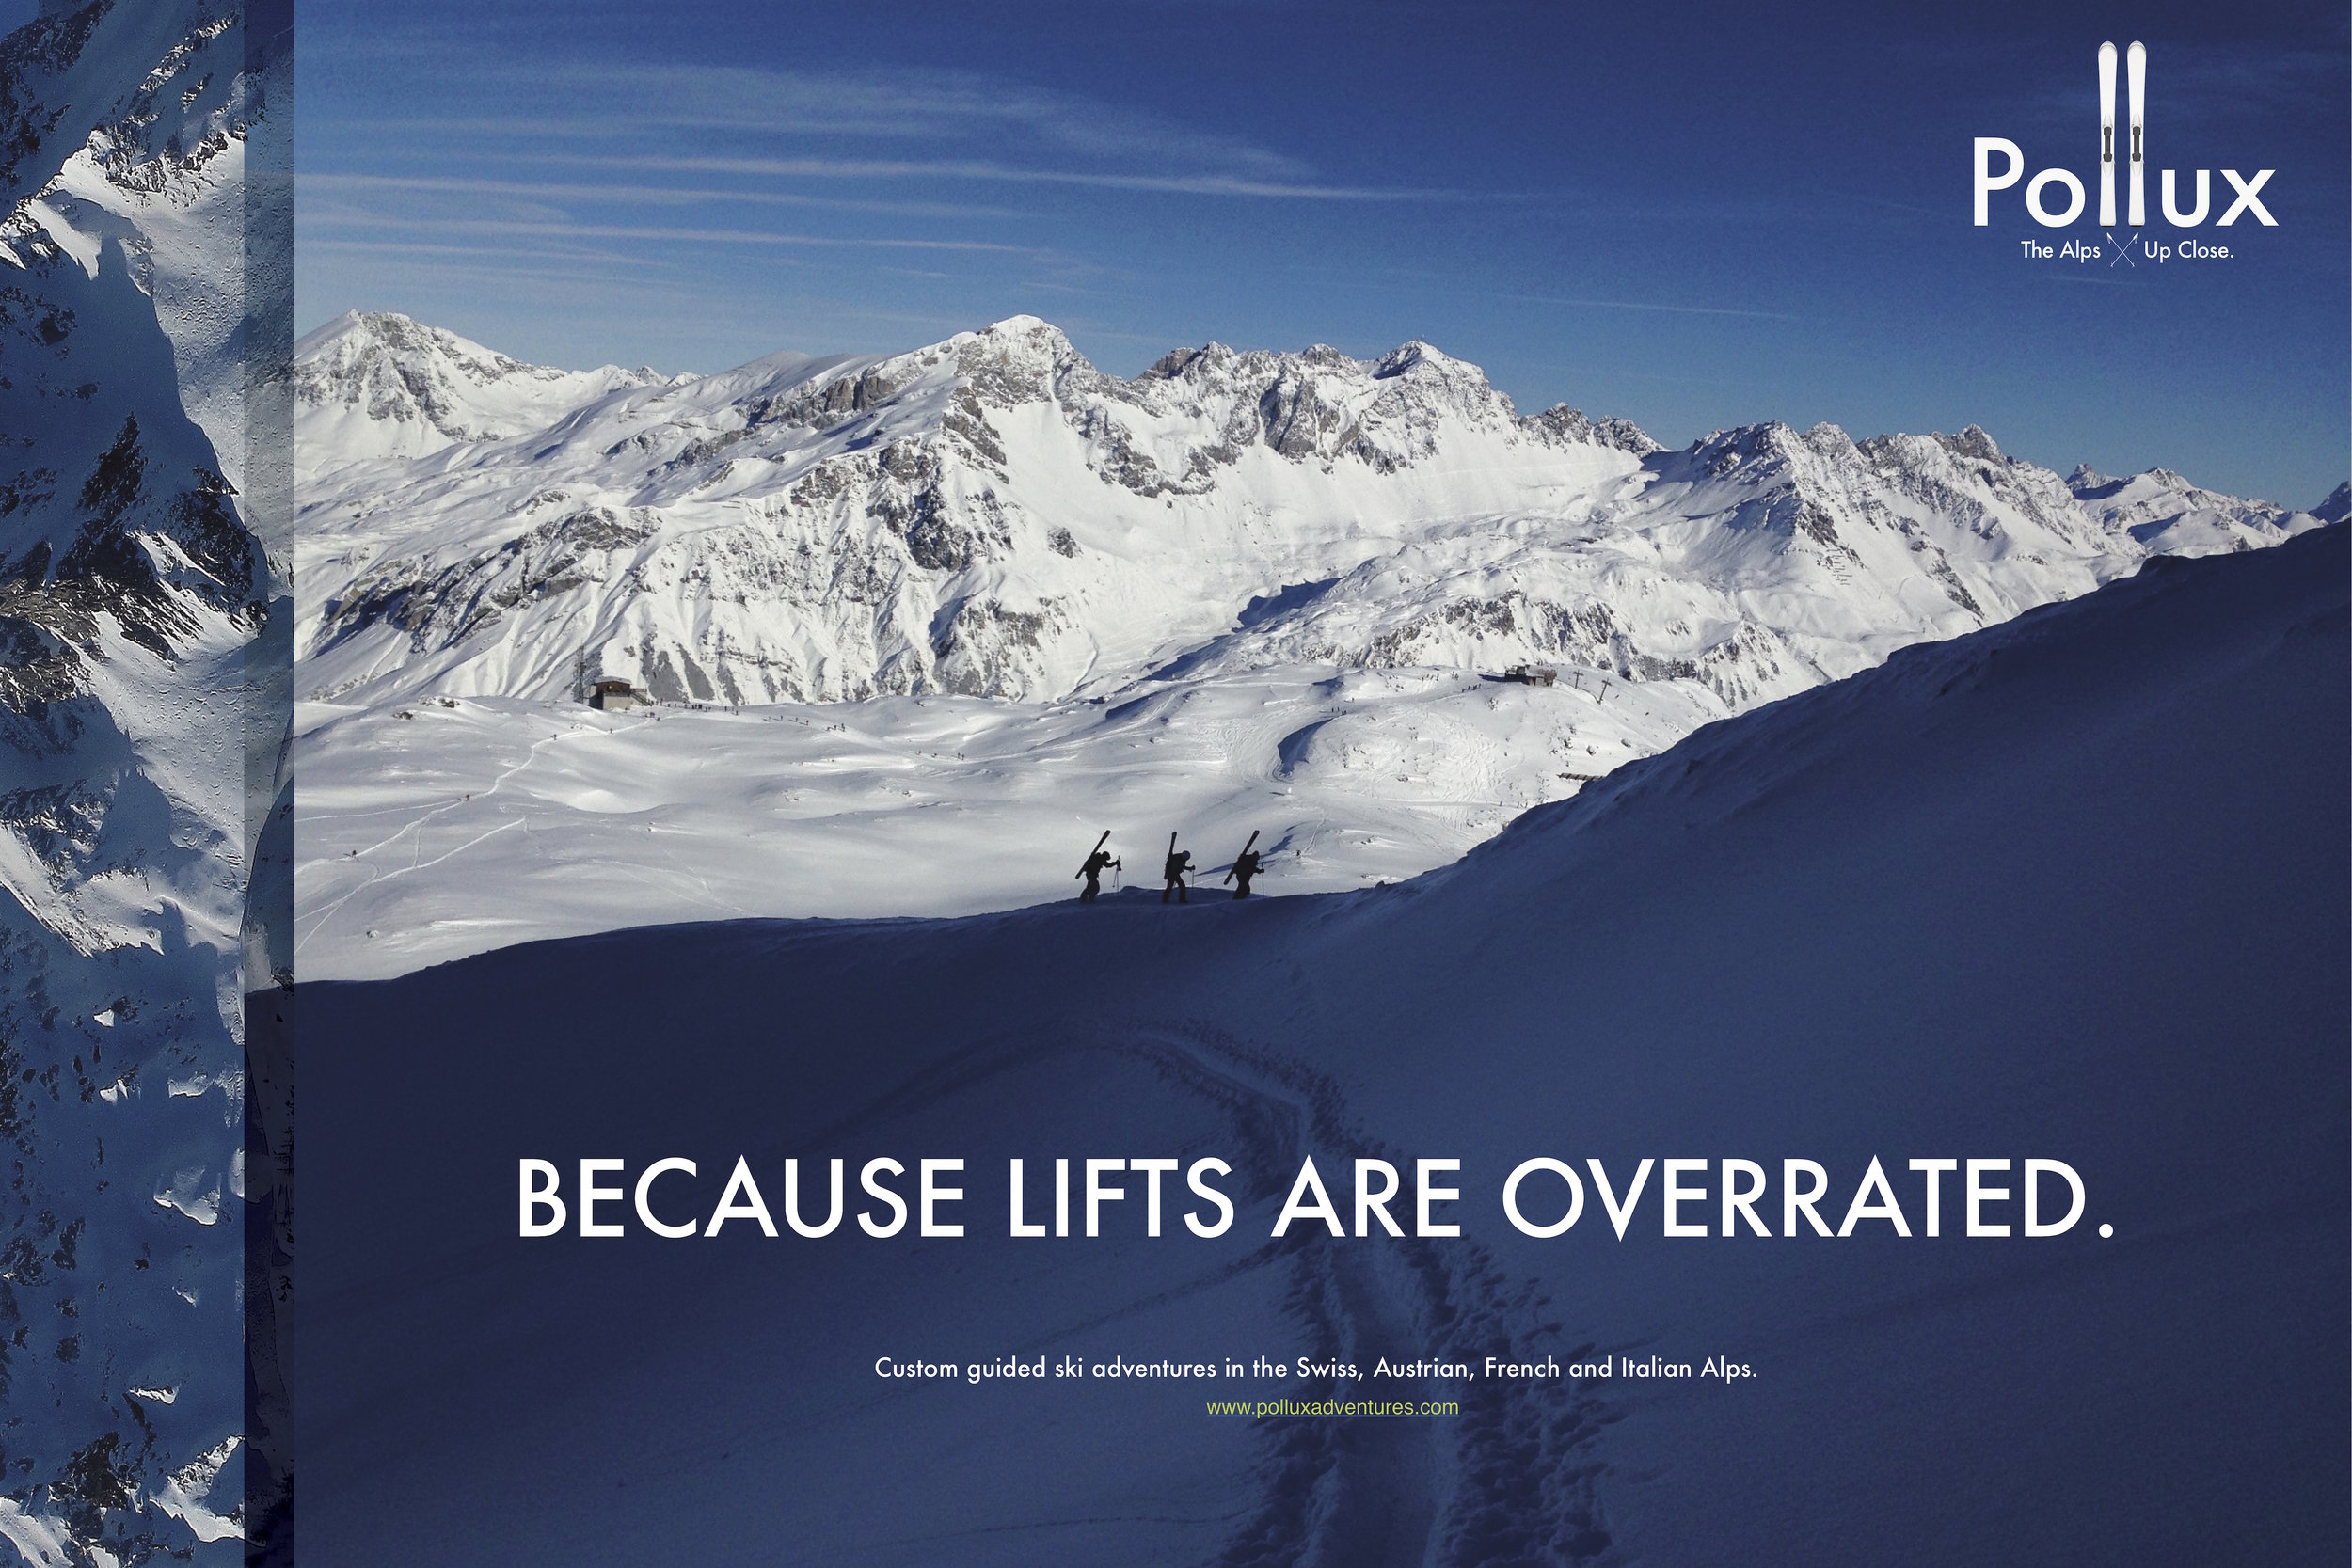 Pollux Mountain Guides  - We used original photography shot on location in the Alps to create this poster series, along with a website and video. The headlines pretty much wrote themselves. VIEW THE CAMPAIGN